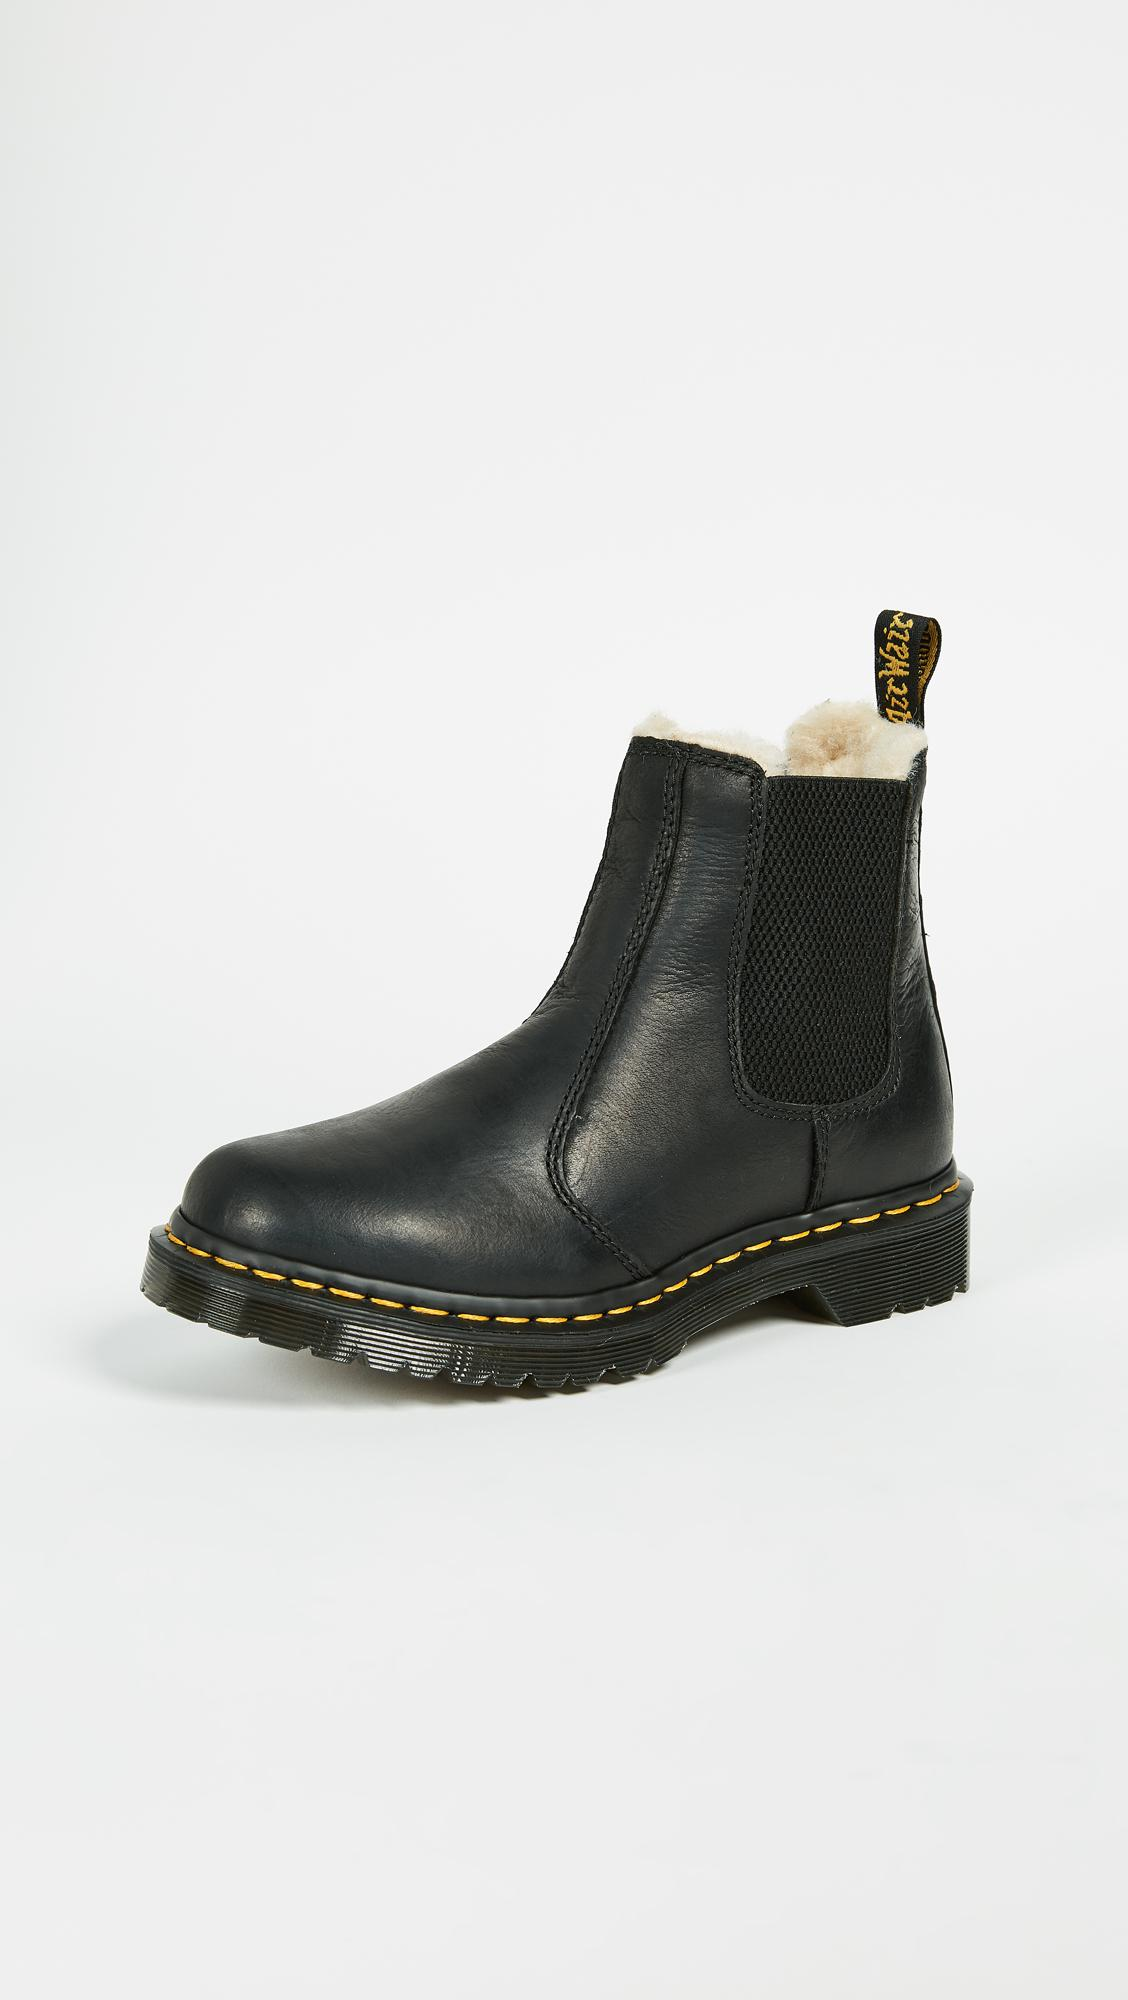 67f86c054e8 Lyst - Dr. Martens Leonore Sherpa Chelsea Boots in Black - Save 3%